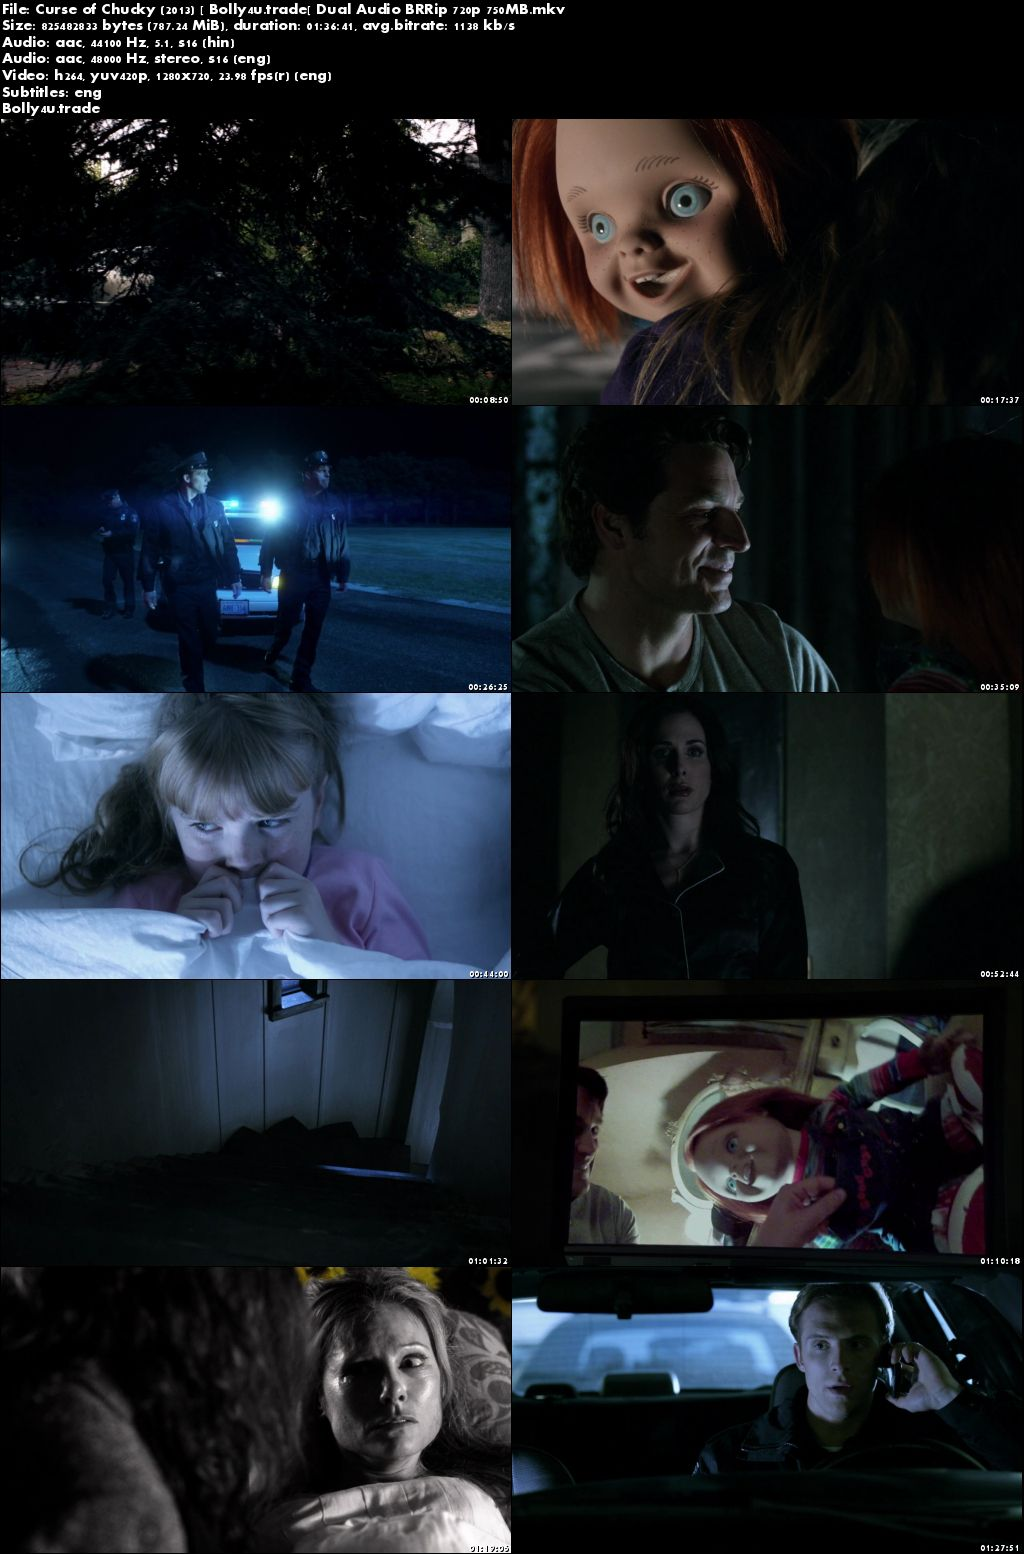 Curse of Chucky 2013 BRRip 750Mb Hindi Dubbed Dual Audio 720p ESub Download